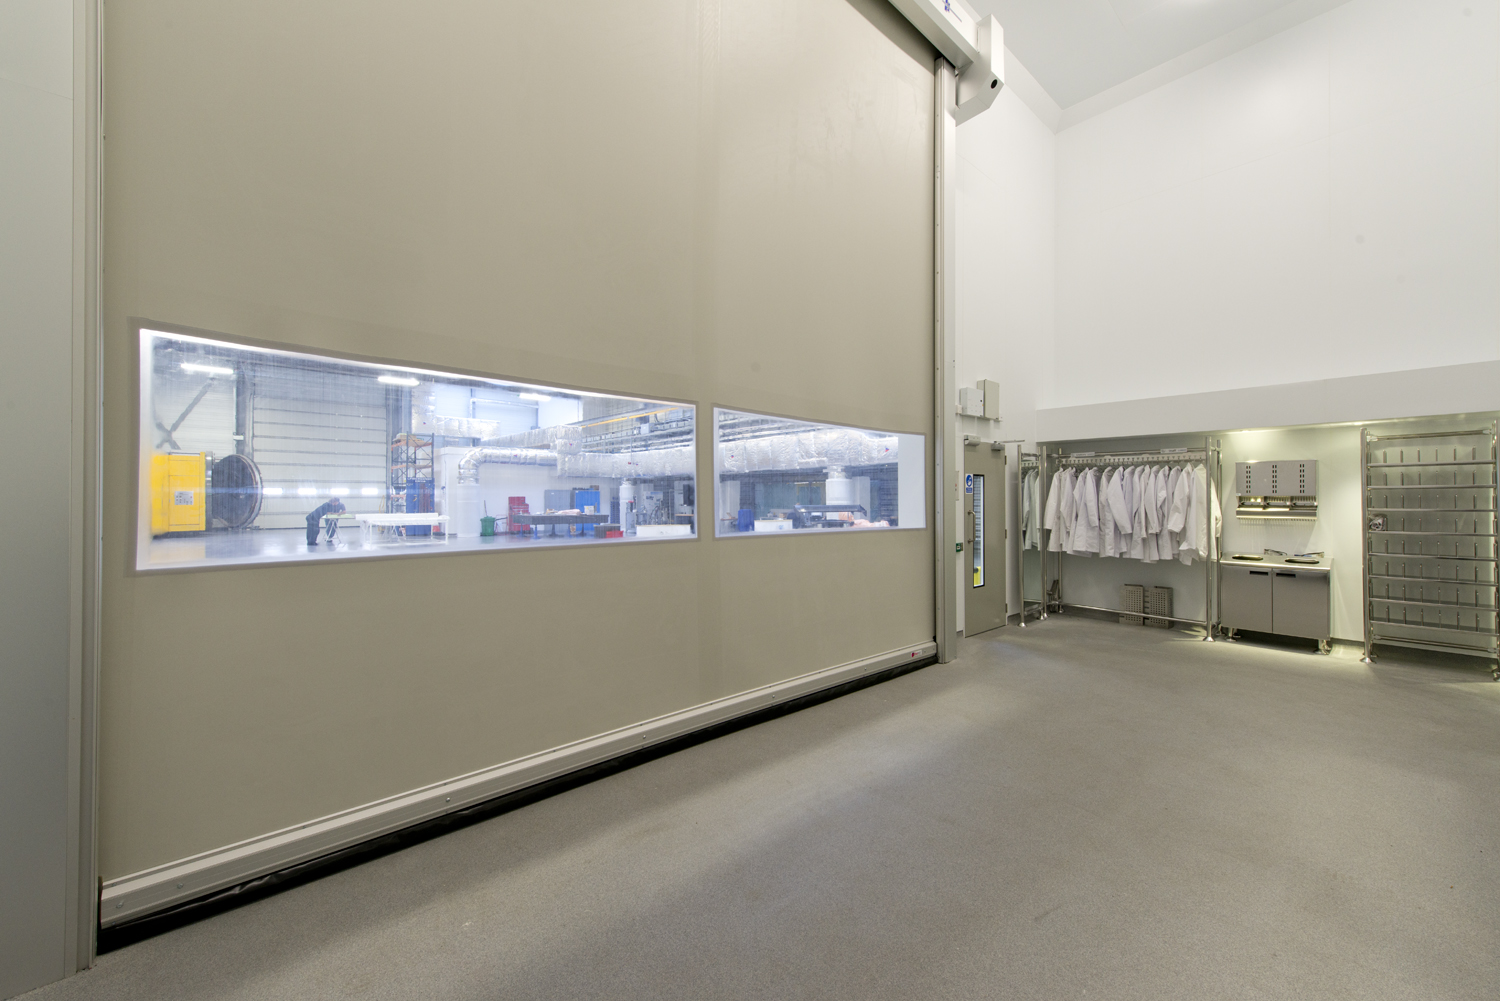 AMRC - Cleanroom